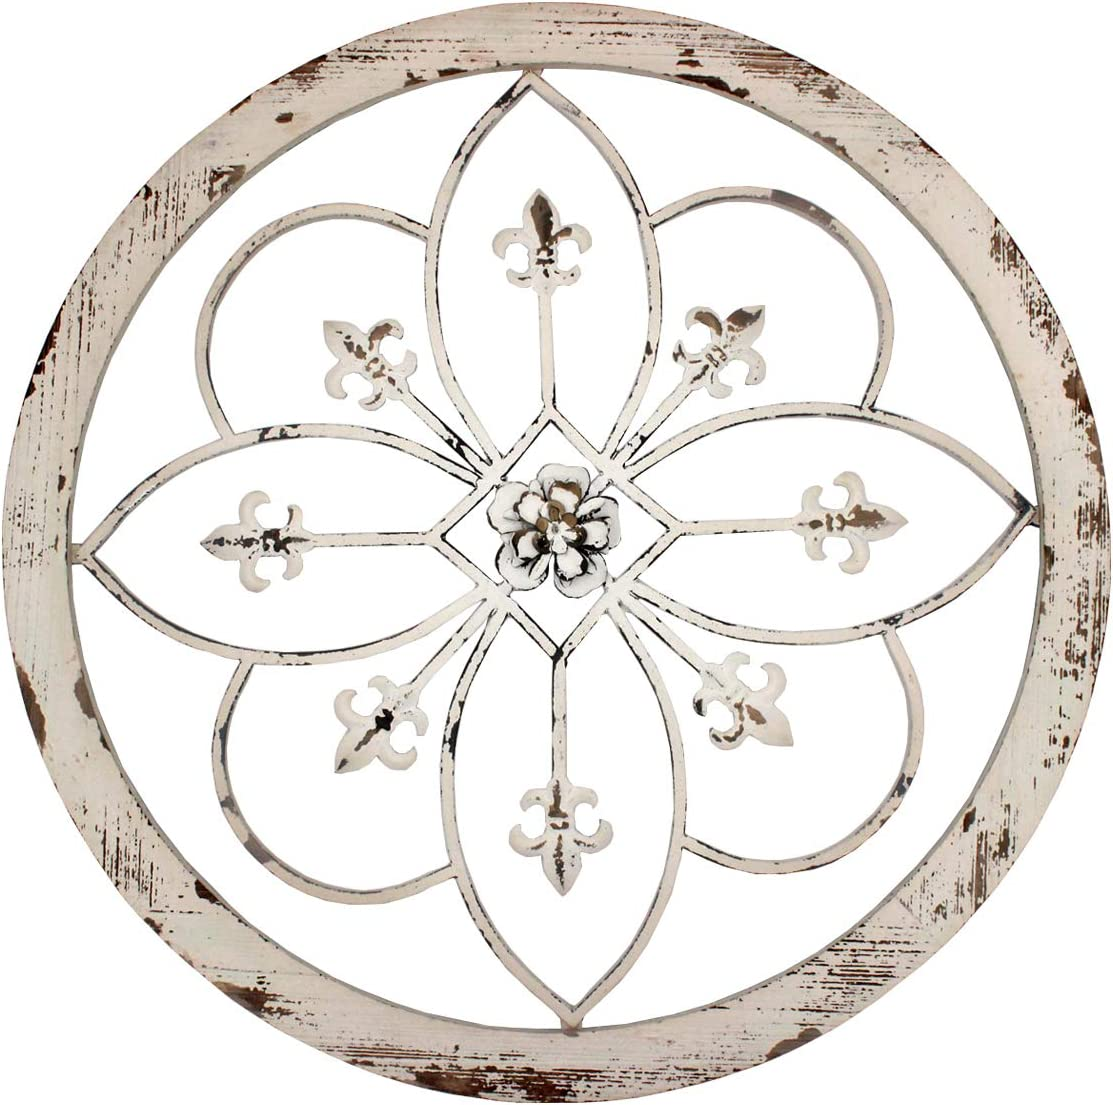 Funly mee Vintage 25.6 Inches Round Metal Flower Wall Decor with Wood Frame ,Metal Fleur De Lis Wall Scupures